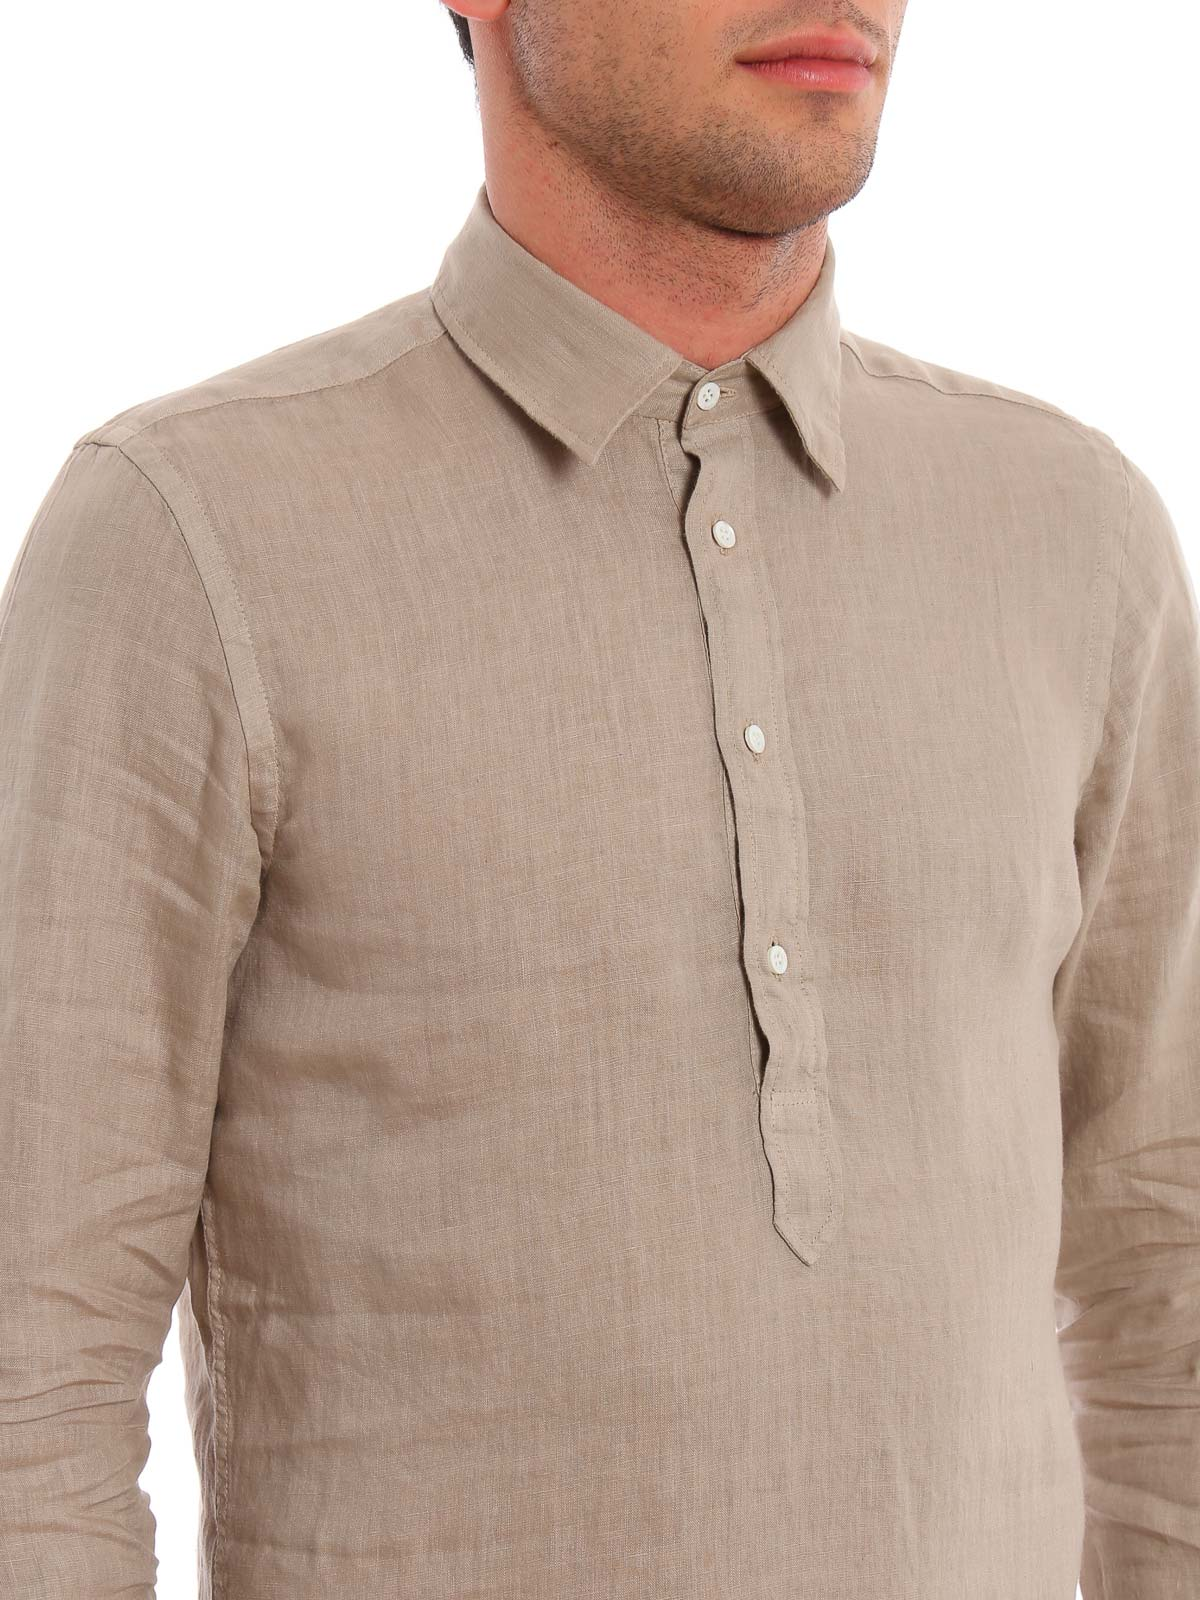 Picture of ASPESI | Men's 3-Button Linen Shirt